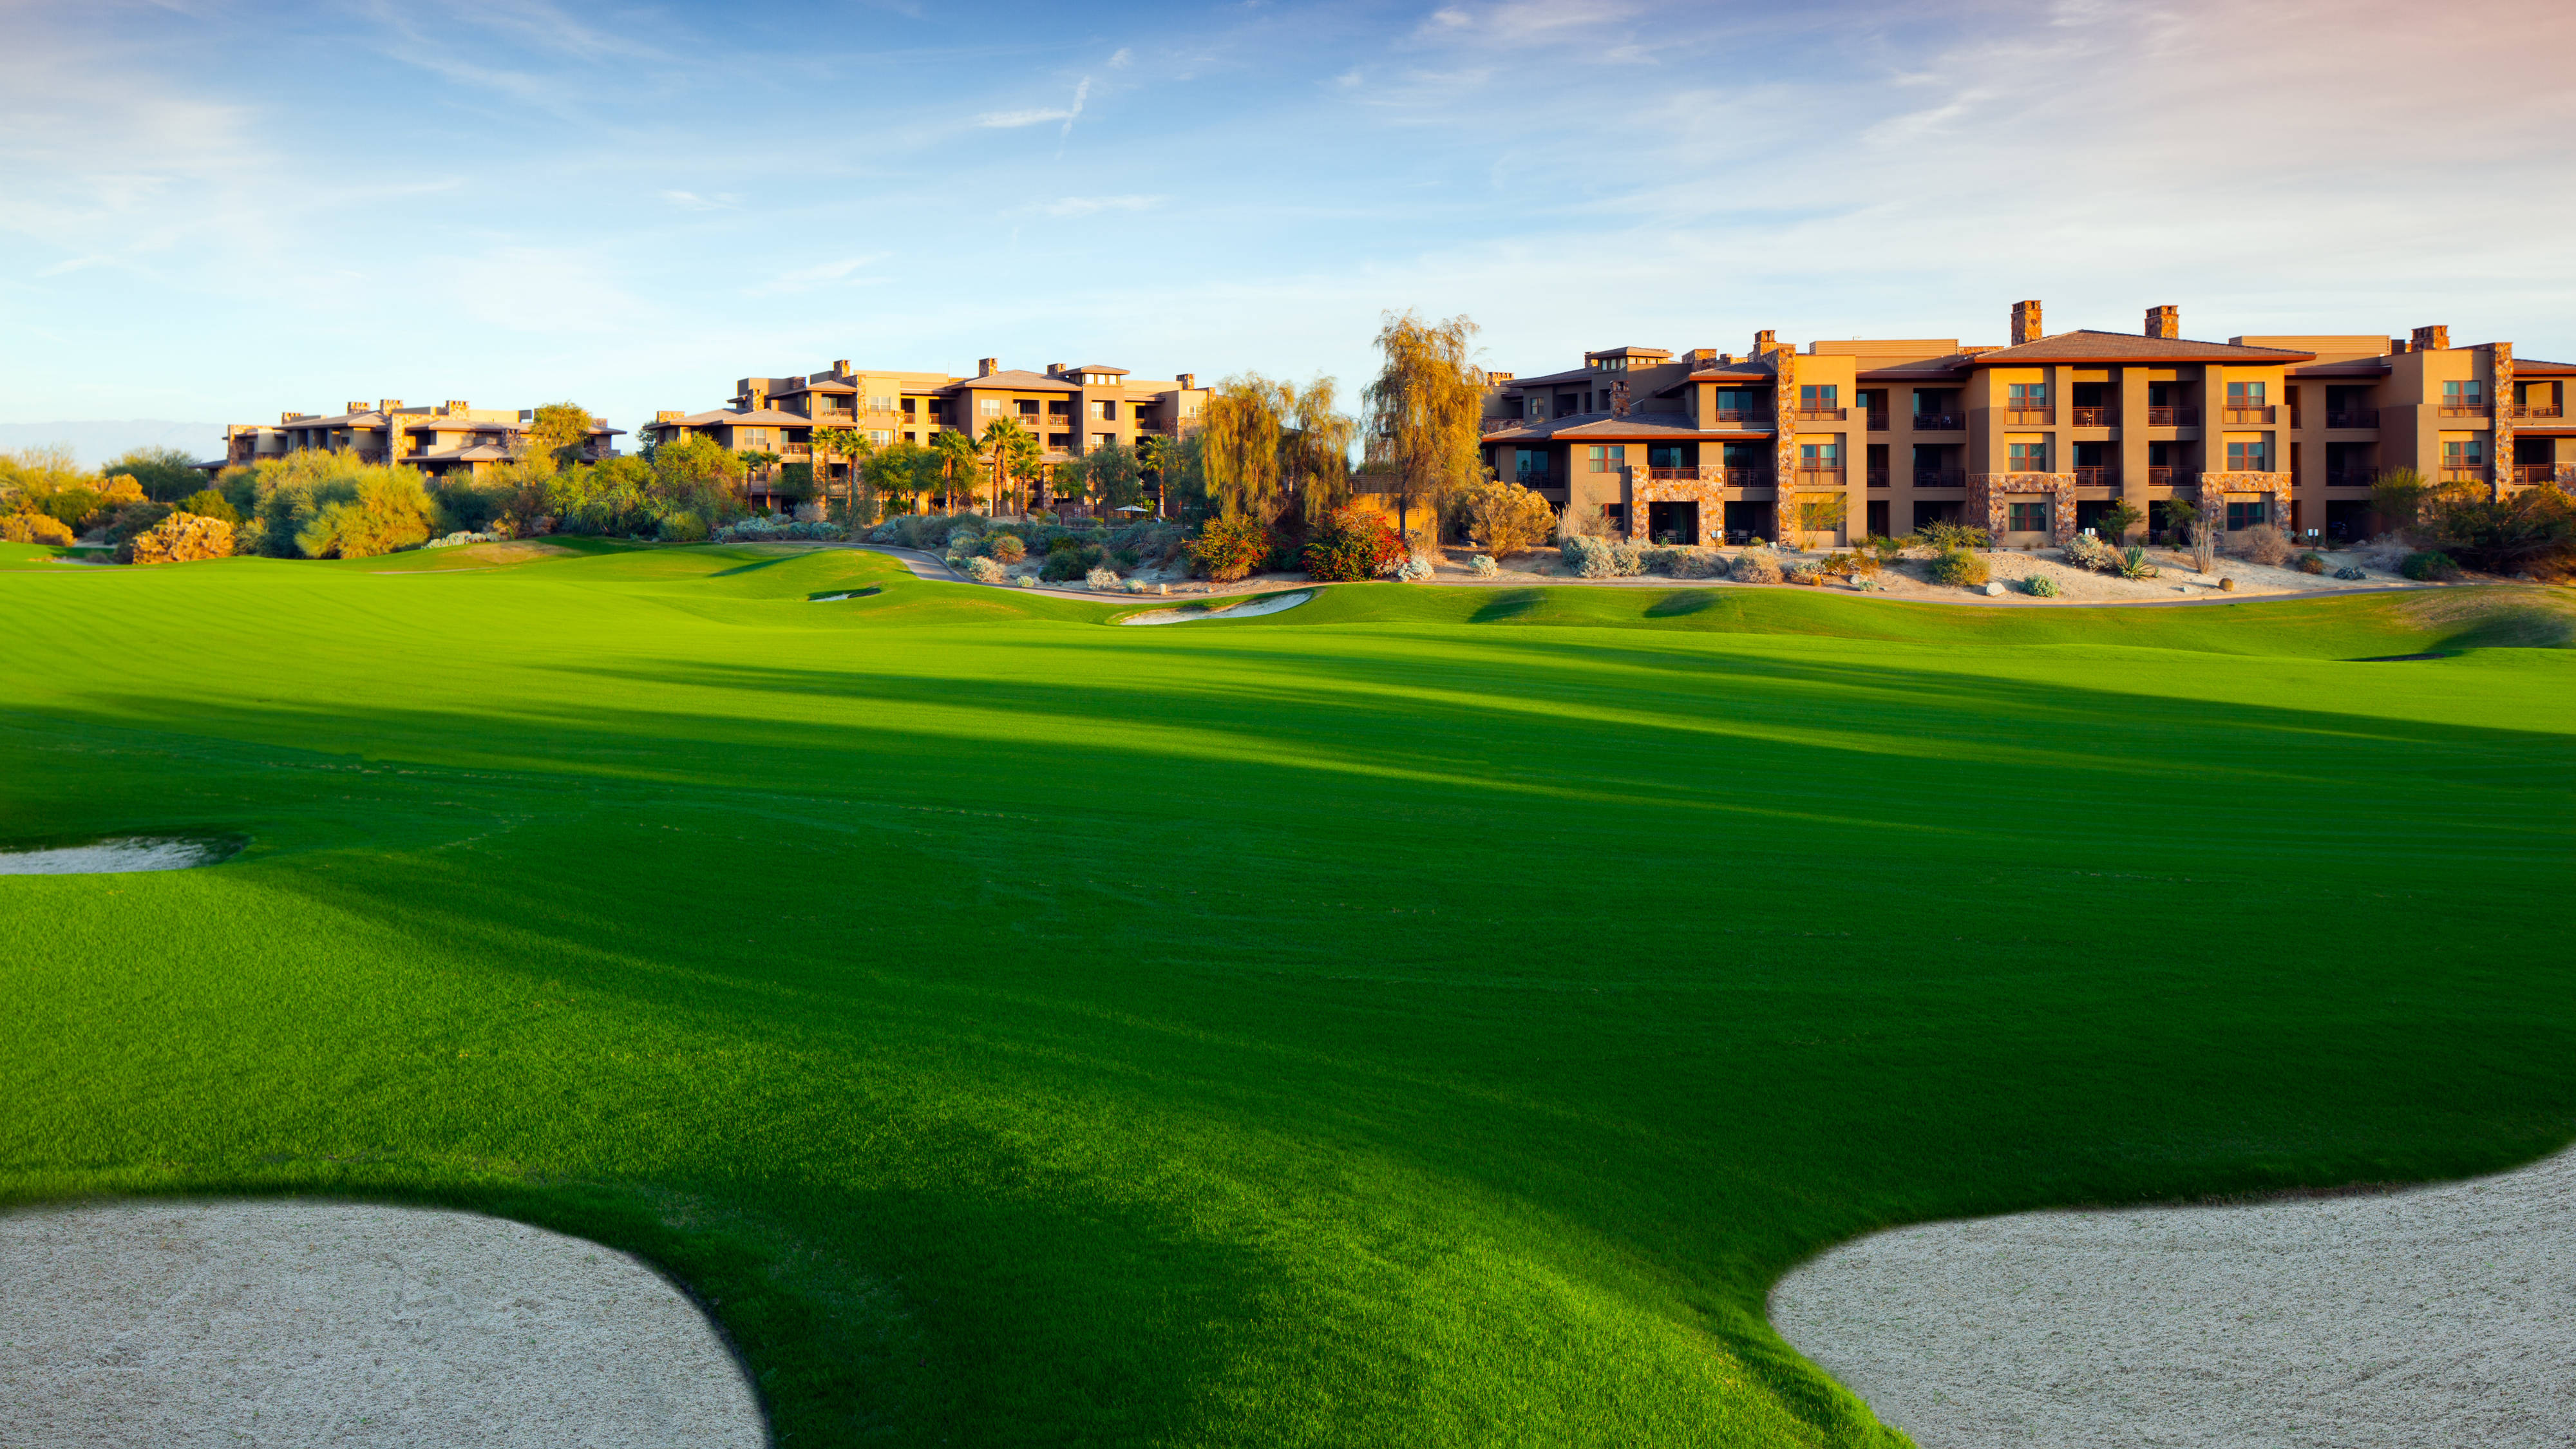 ctdwi-golf-course-7350-hor-wide